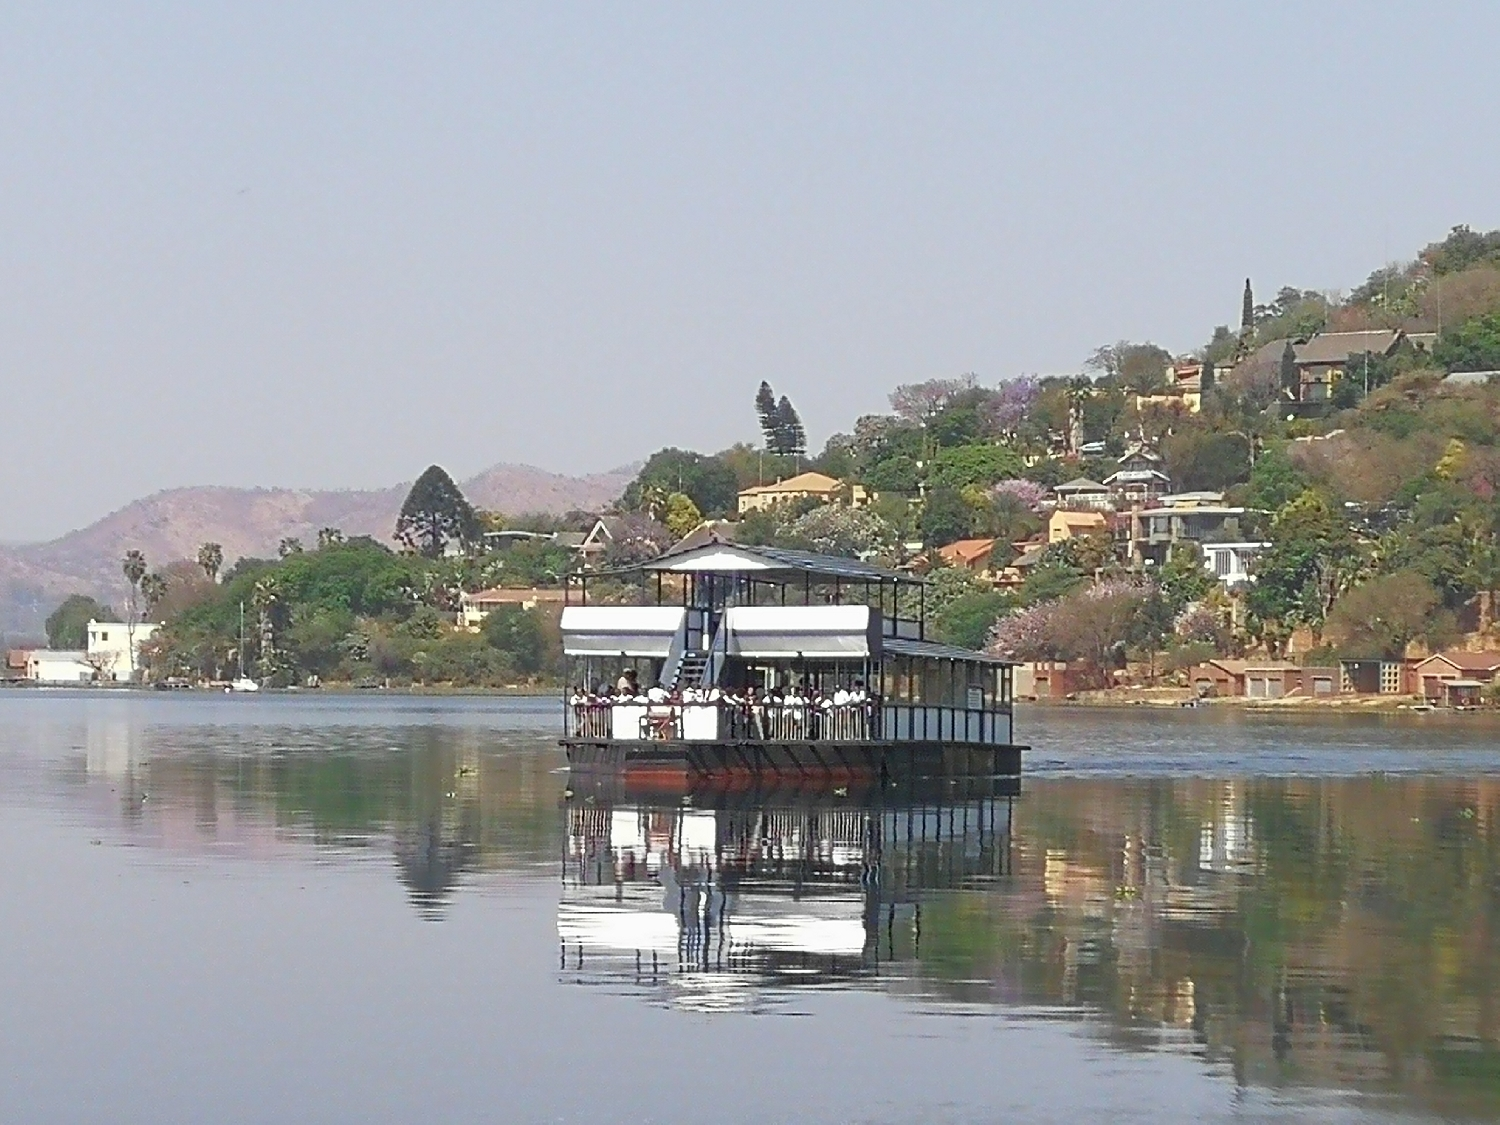 boat-cruise-on-the-hartbeespoort-dam